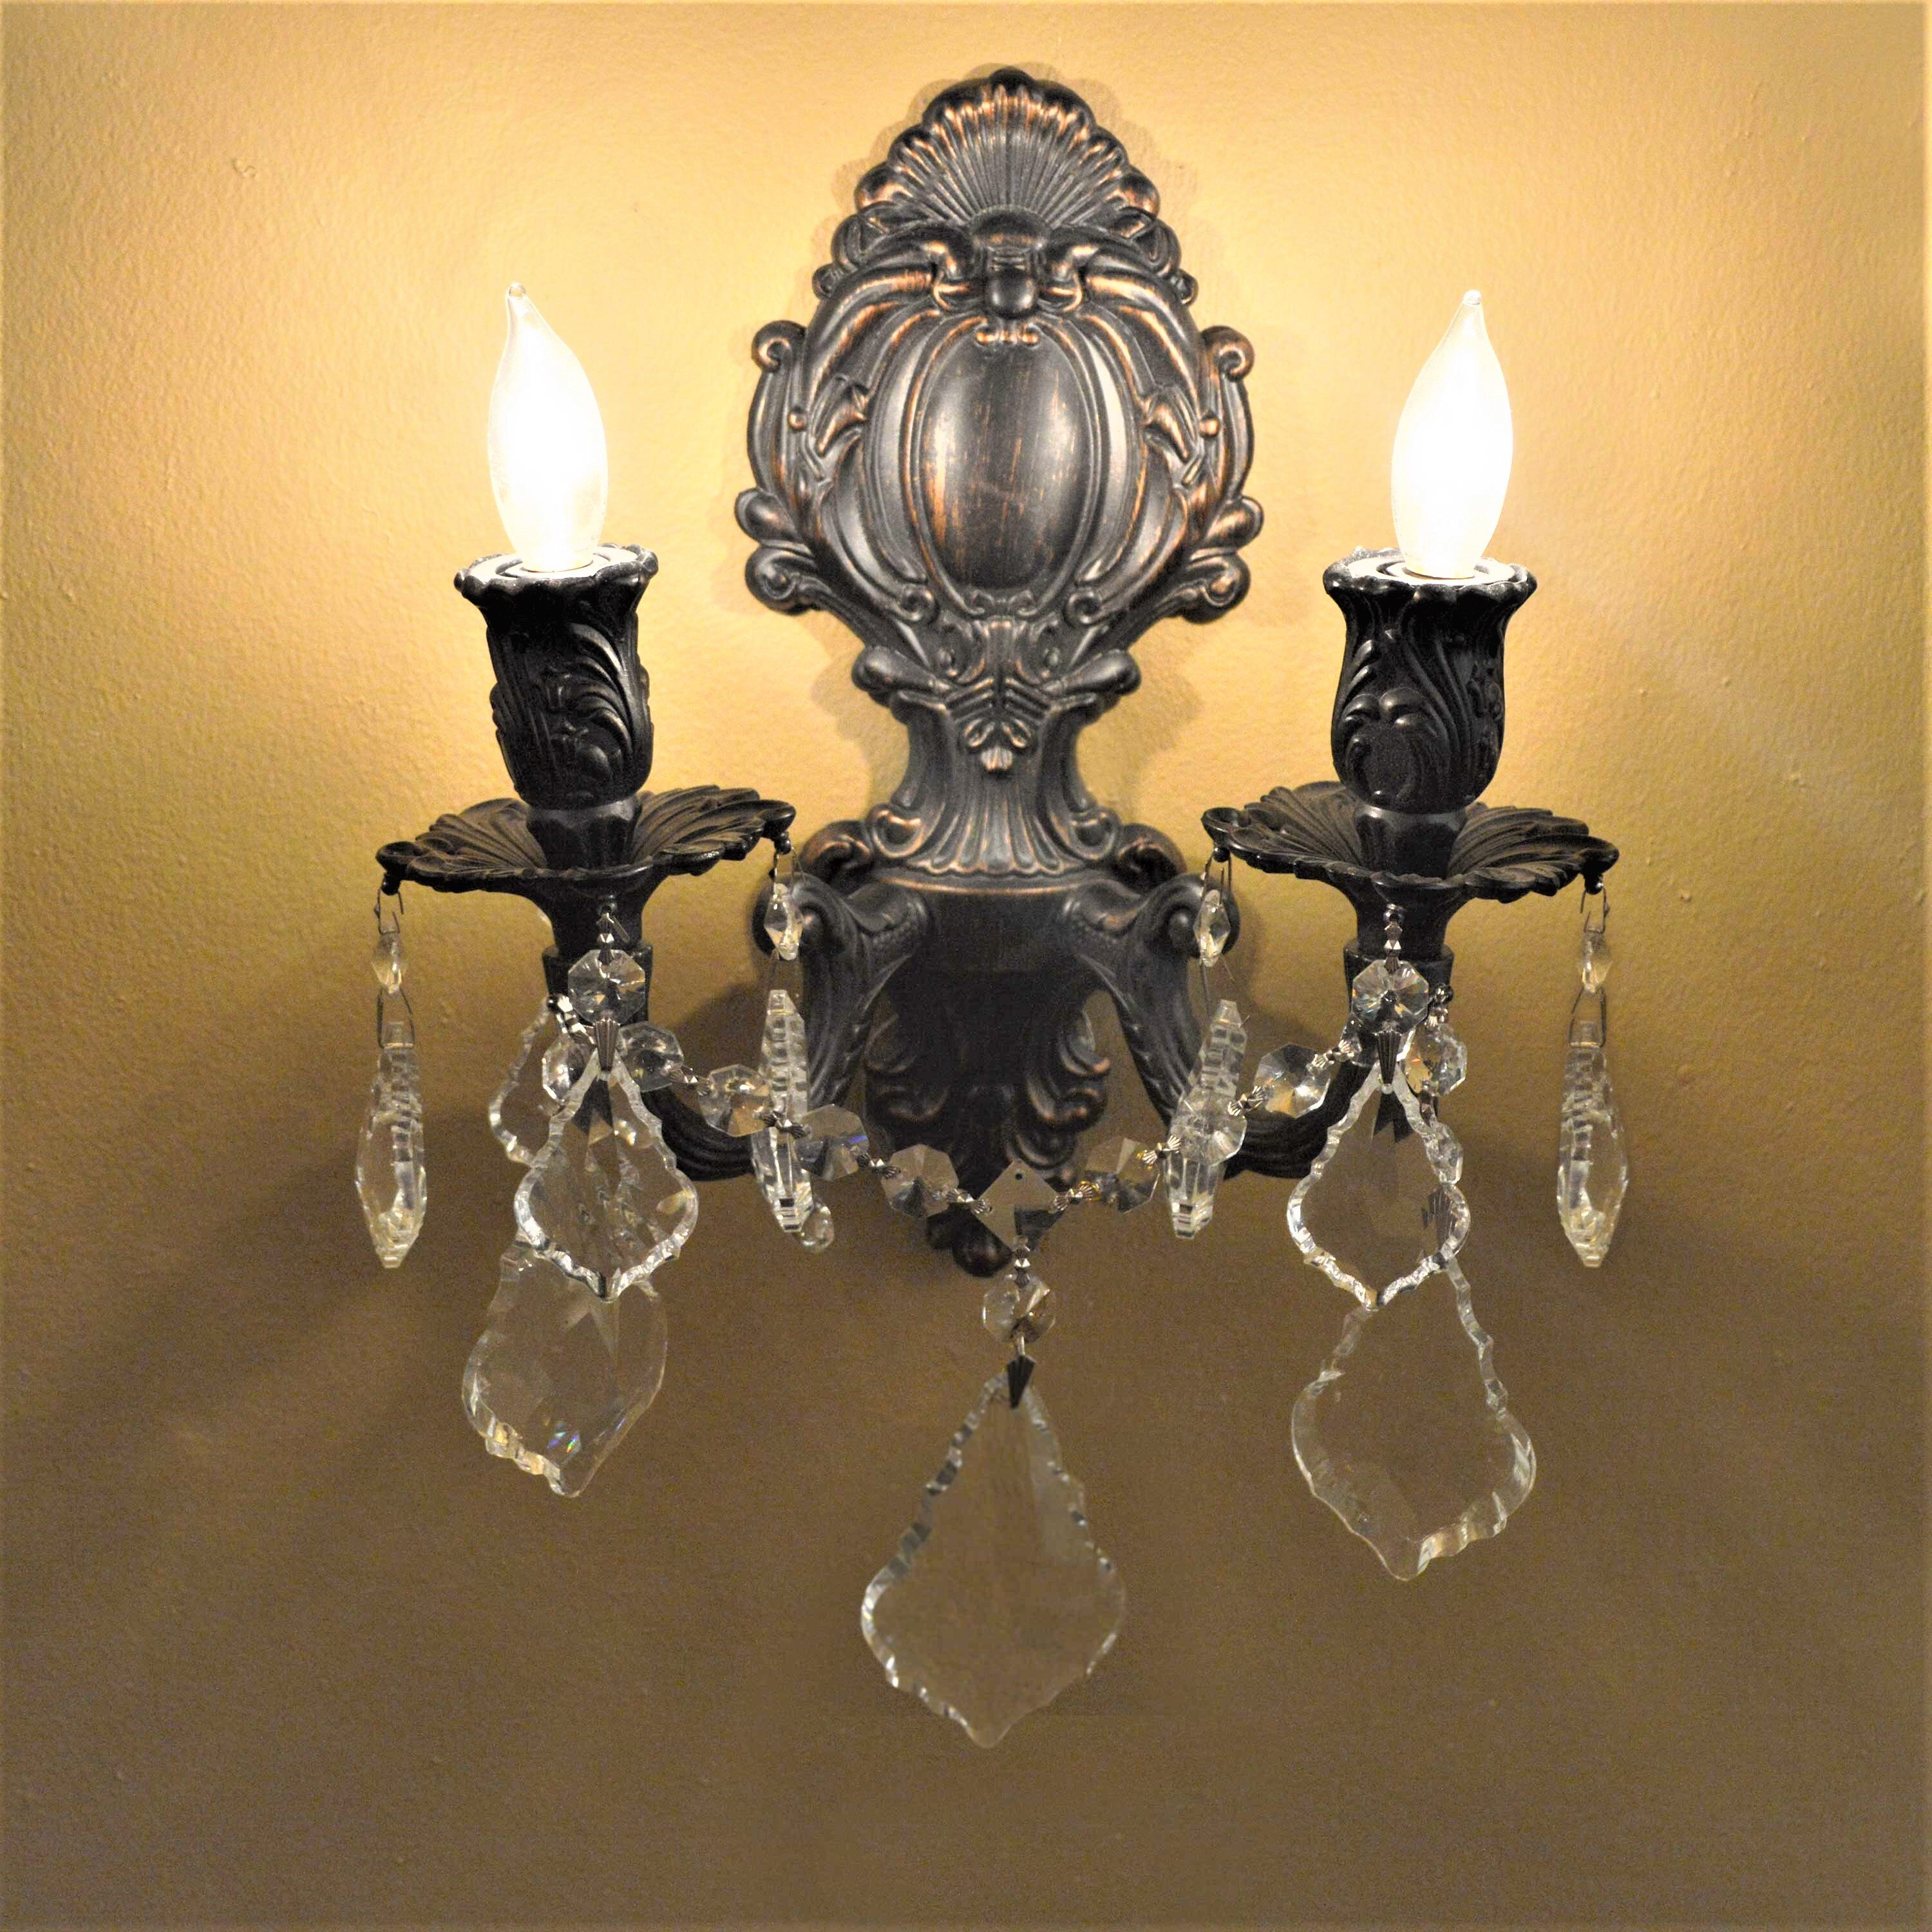 2 Astoria Grand Wall Sconces You Ll Love In 2021 Wayfair